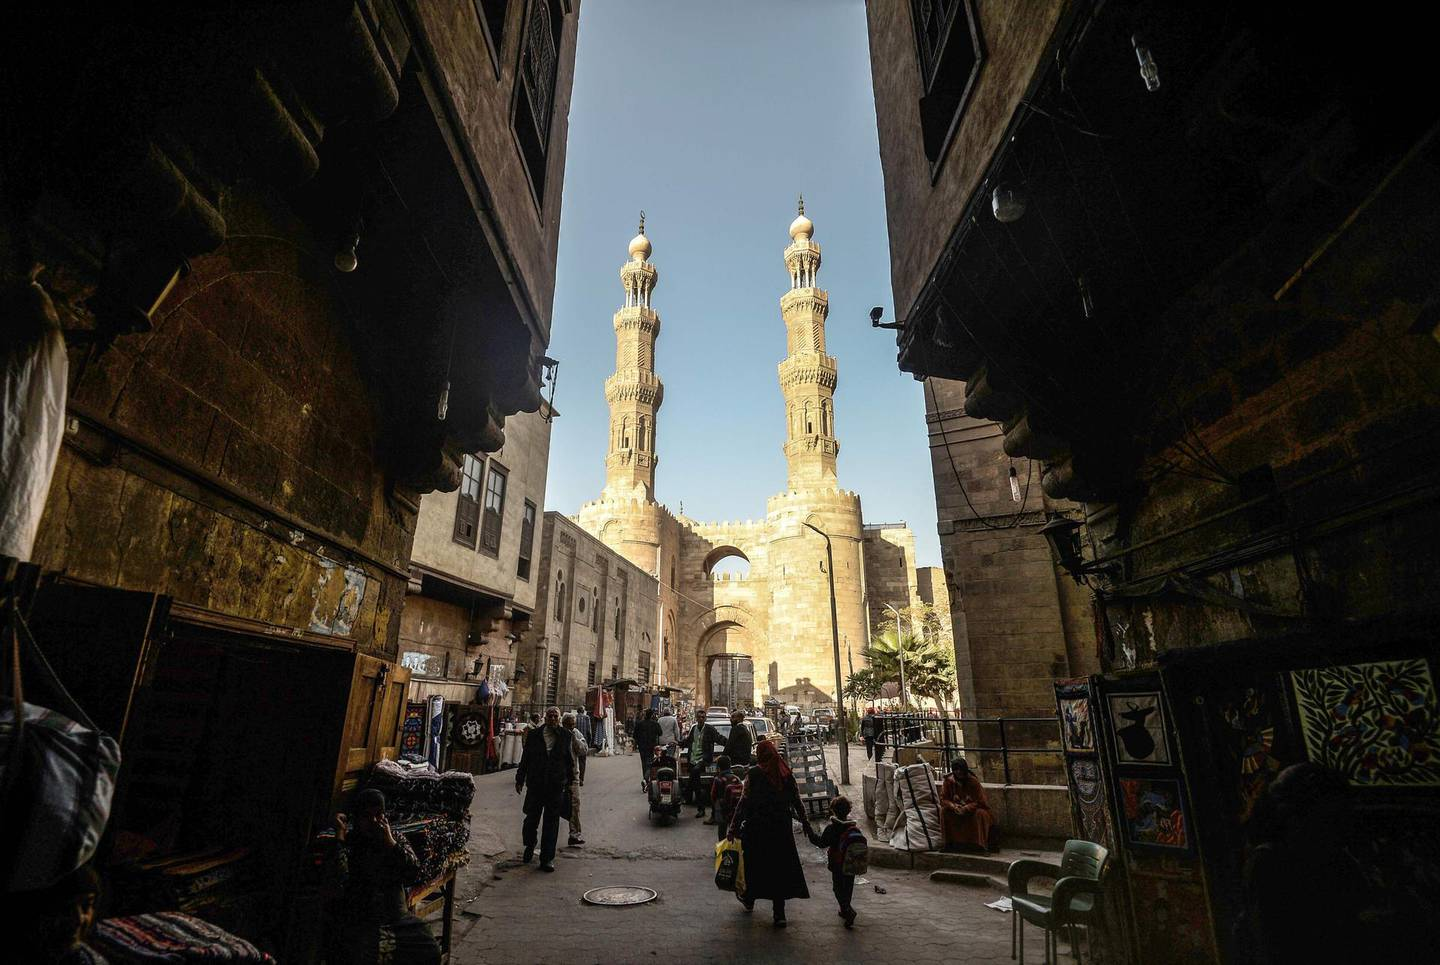 This picture taken on December 18, 2018 shows a view from the entrance of Khayamiya Street, or the Street of Tent-makers, leading up to the 11th century Bab Zuweila, one of the surviving main gates of the old city of the Egyptian capital Cairo. Along the sides of the roofed street of Khayamiya, or the Street of Tent-makers, dozens of craftsmen's shops have drawn foreign visitors for years until the 2011 uprising toppled longtime ruler Hosni Mubarak after which business has slowed to a trickle. The centuries-old art of Khayamiya, belived to have emerged during the Fatimid dynasty (10th-12th century AD), goes back to the time of travelling caravans, when huge tent pavilions were used as shields from the desert's searing sun. / AFP / Mohamed el-Shahed